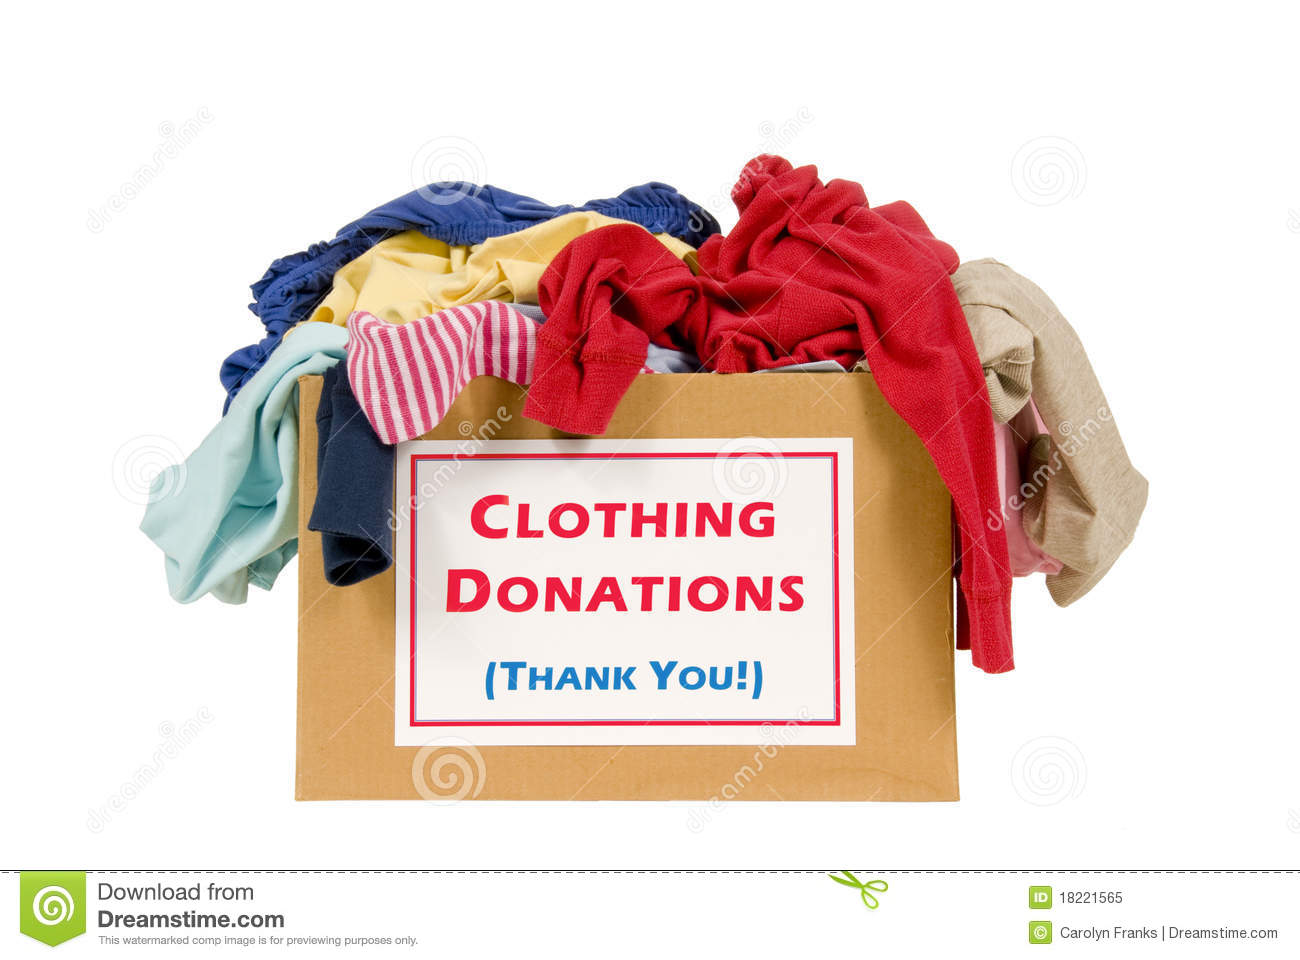 Clothing drive clipart 5 » Clipart Station.